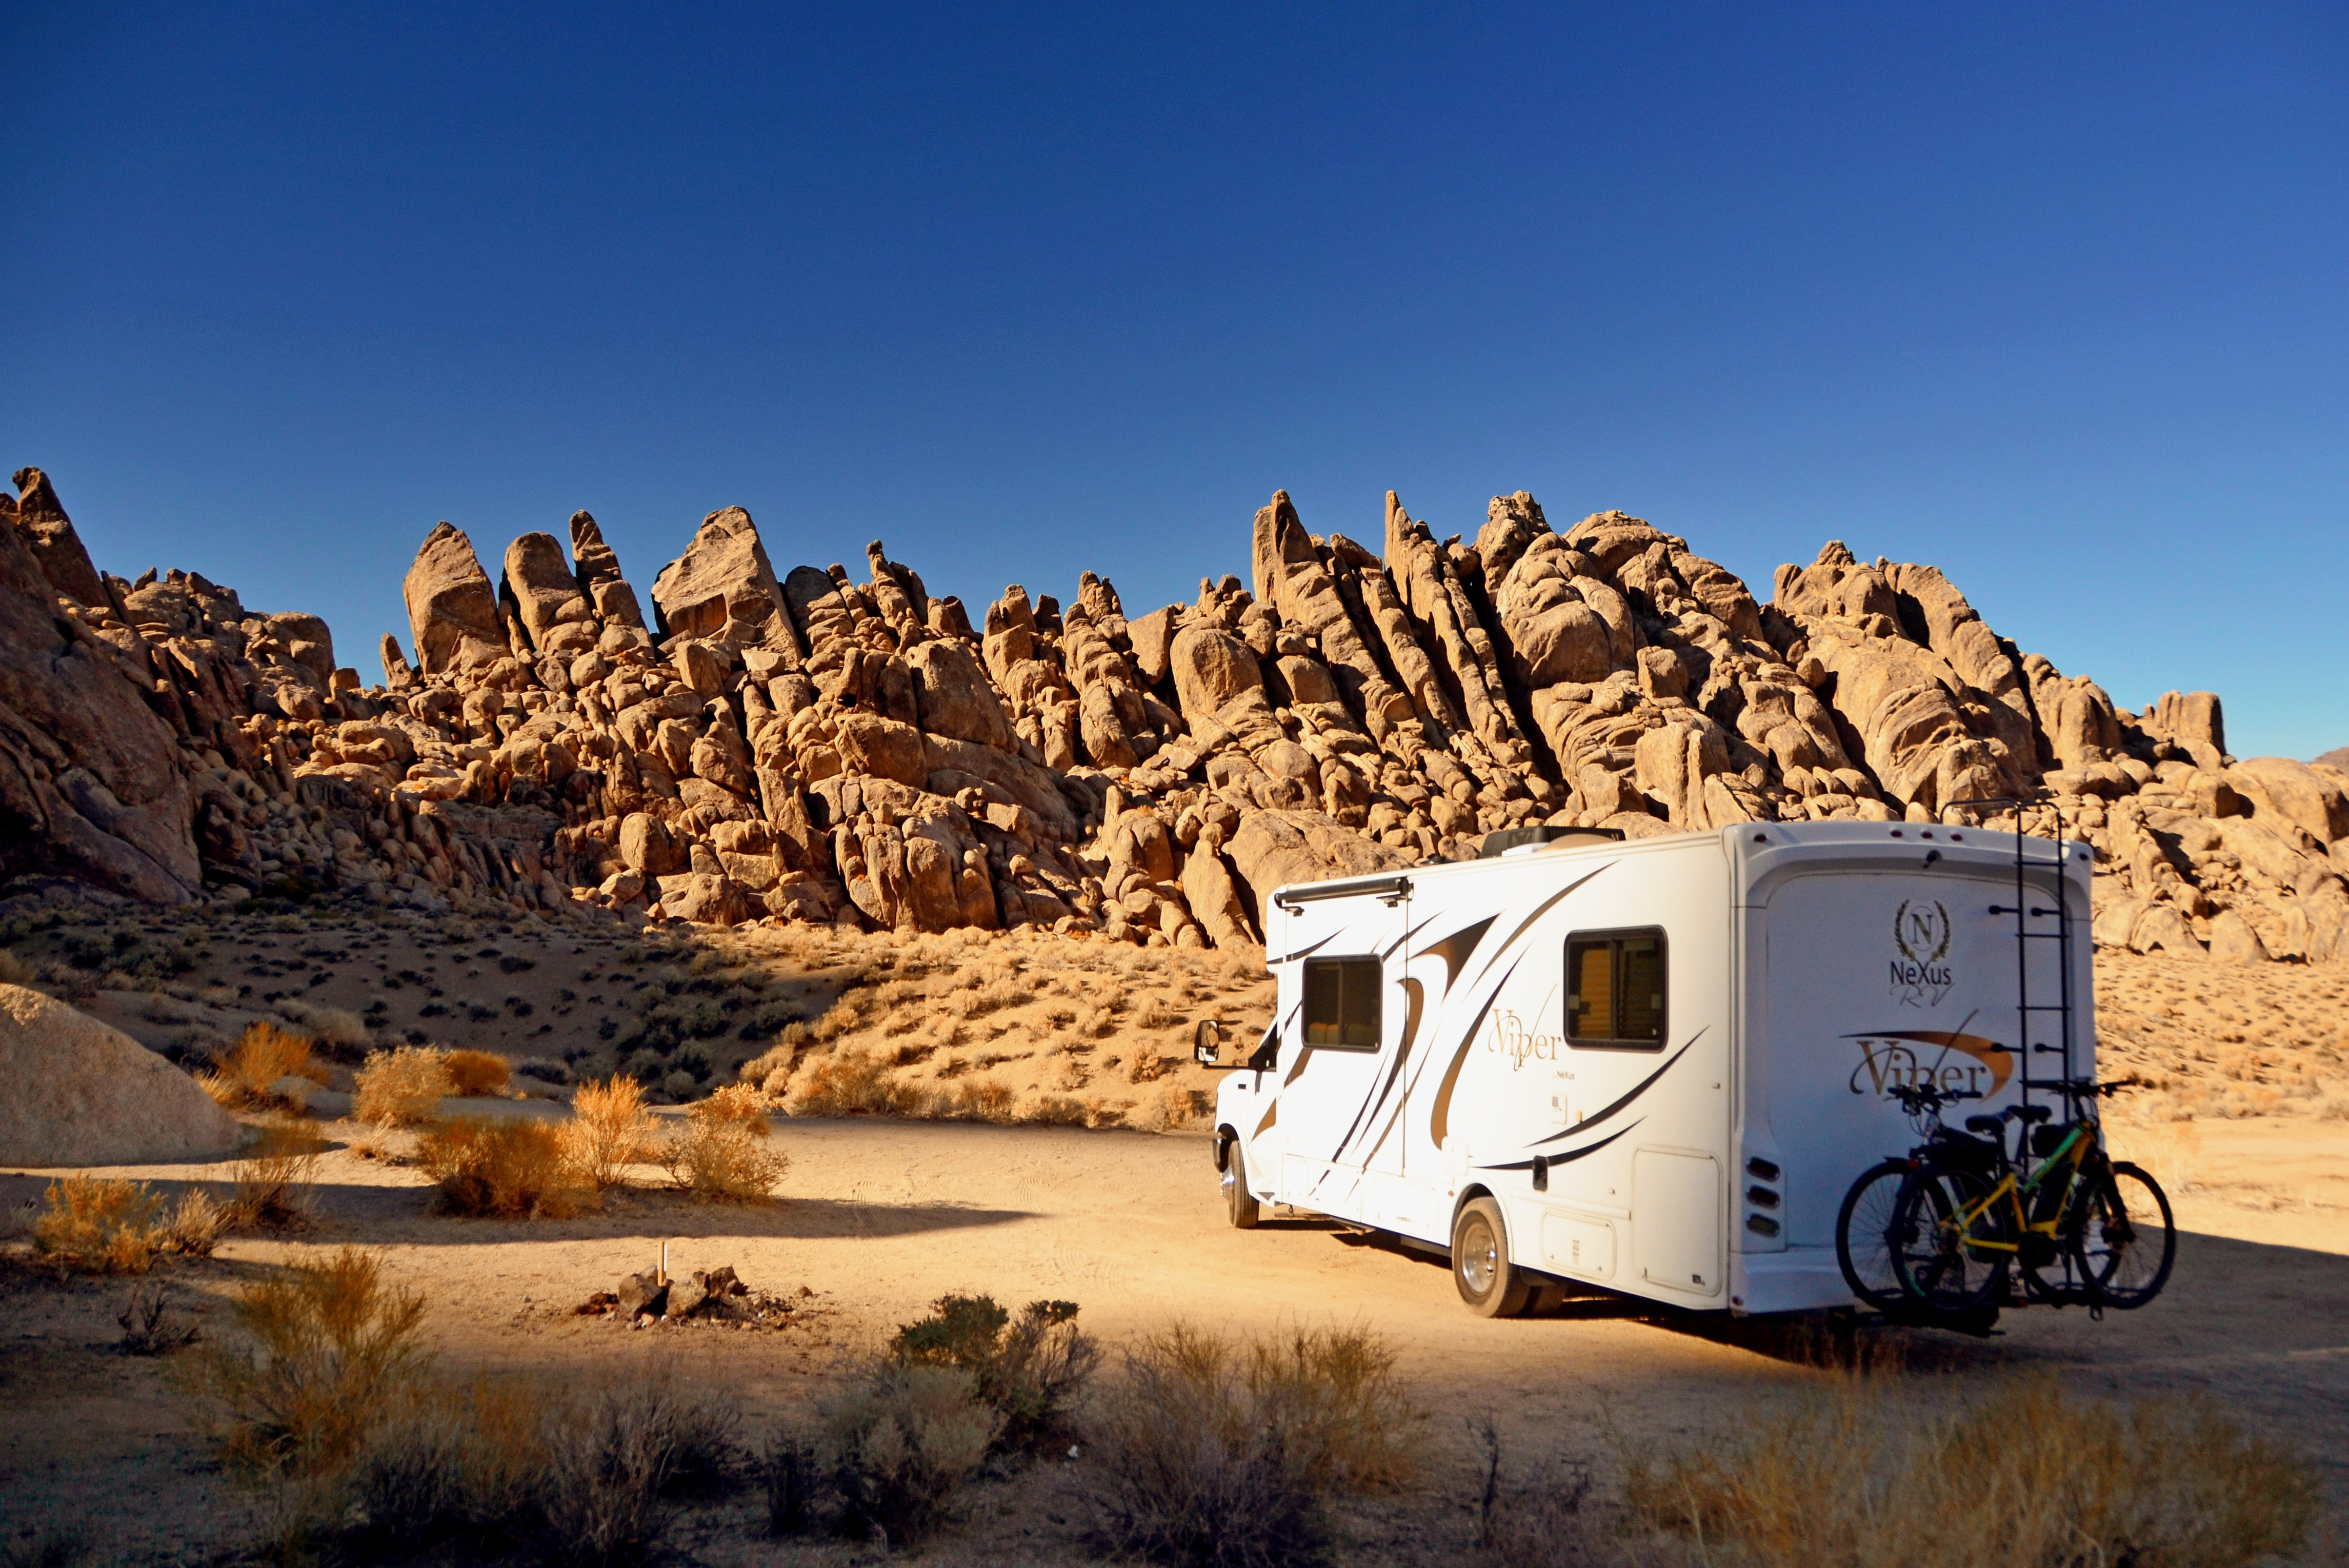 Choosing your RV campsite